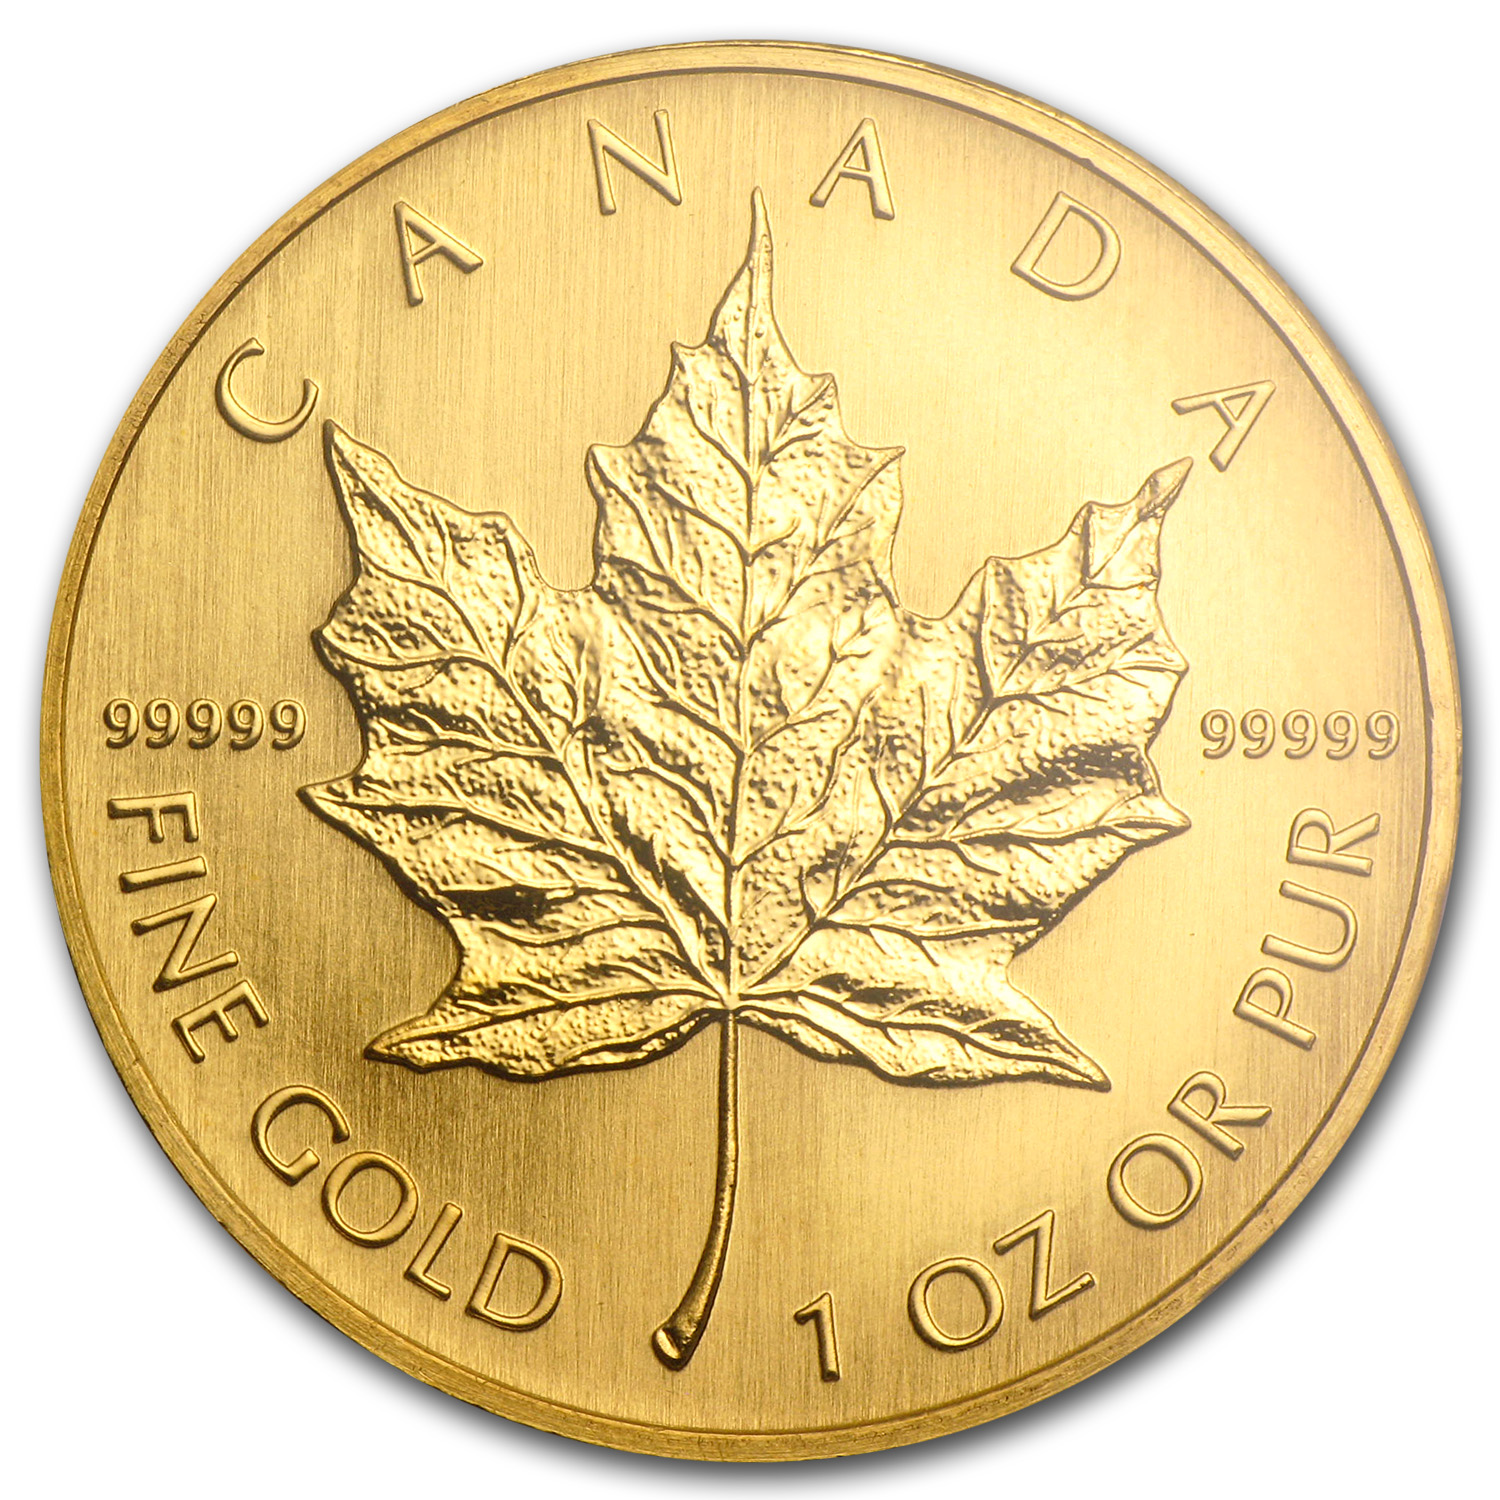 2005 Canada 1 oz Gold Maple Leaf .99999 BU (w/Box & COA)